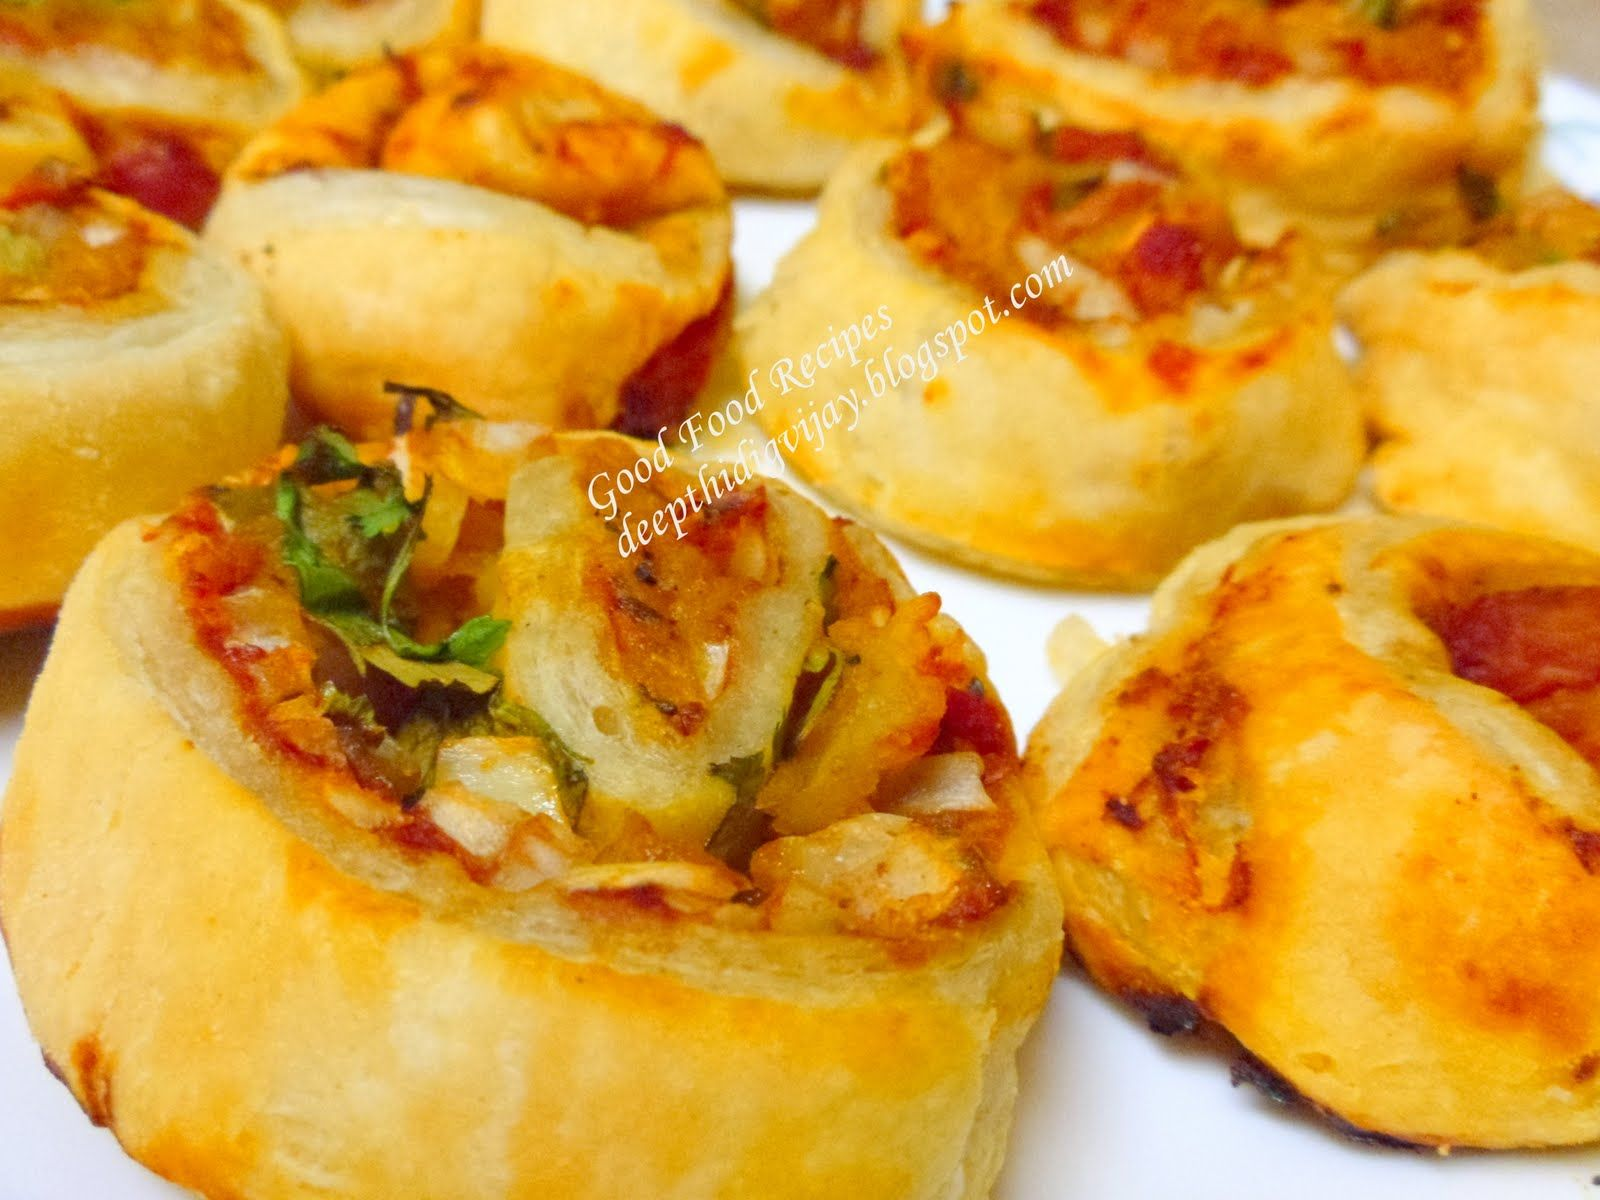 Pastry puff finger food recipes pastries recipes pinterest pastry puff finger food recipes forumfinder Images